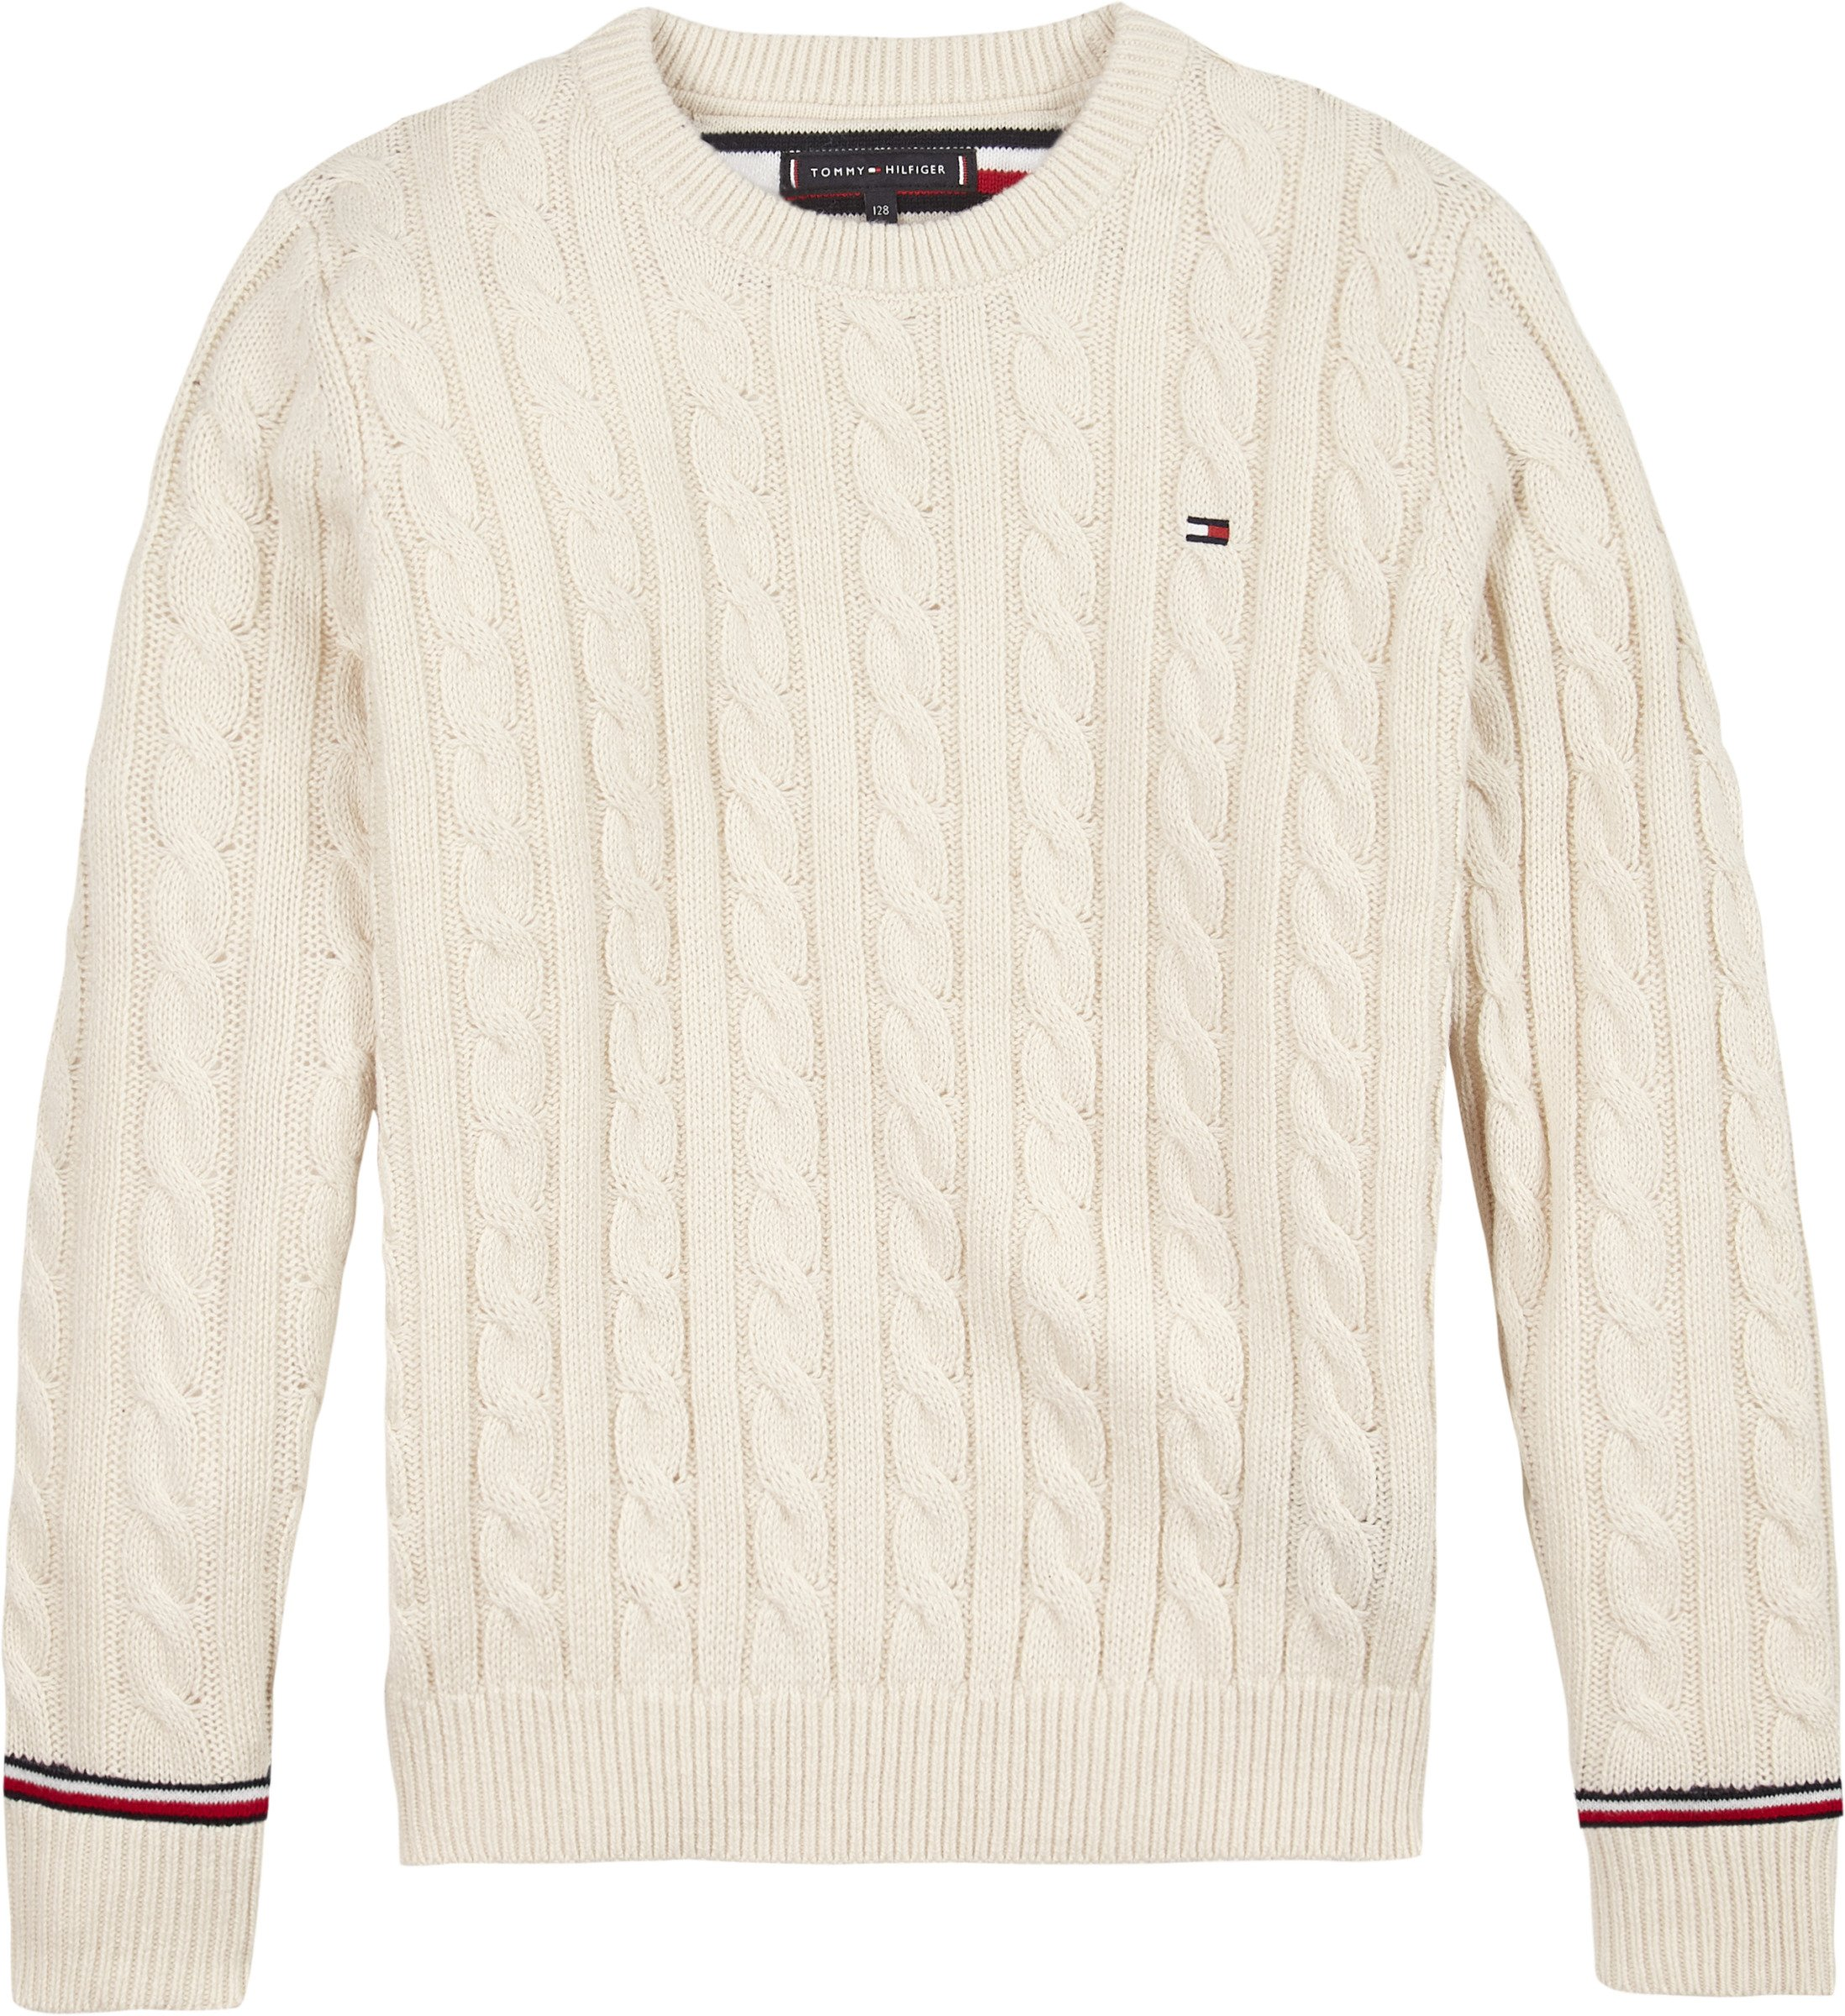 Tommy Hilfiger, essential cabel sweater neulepaita